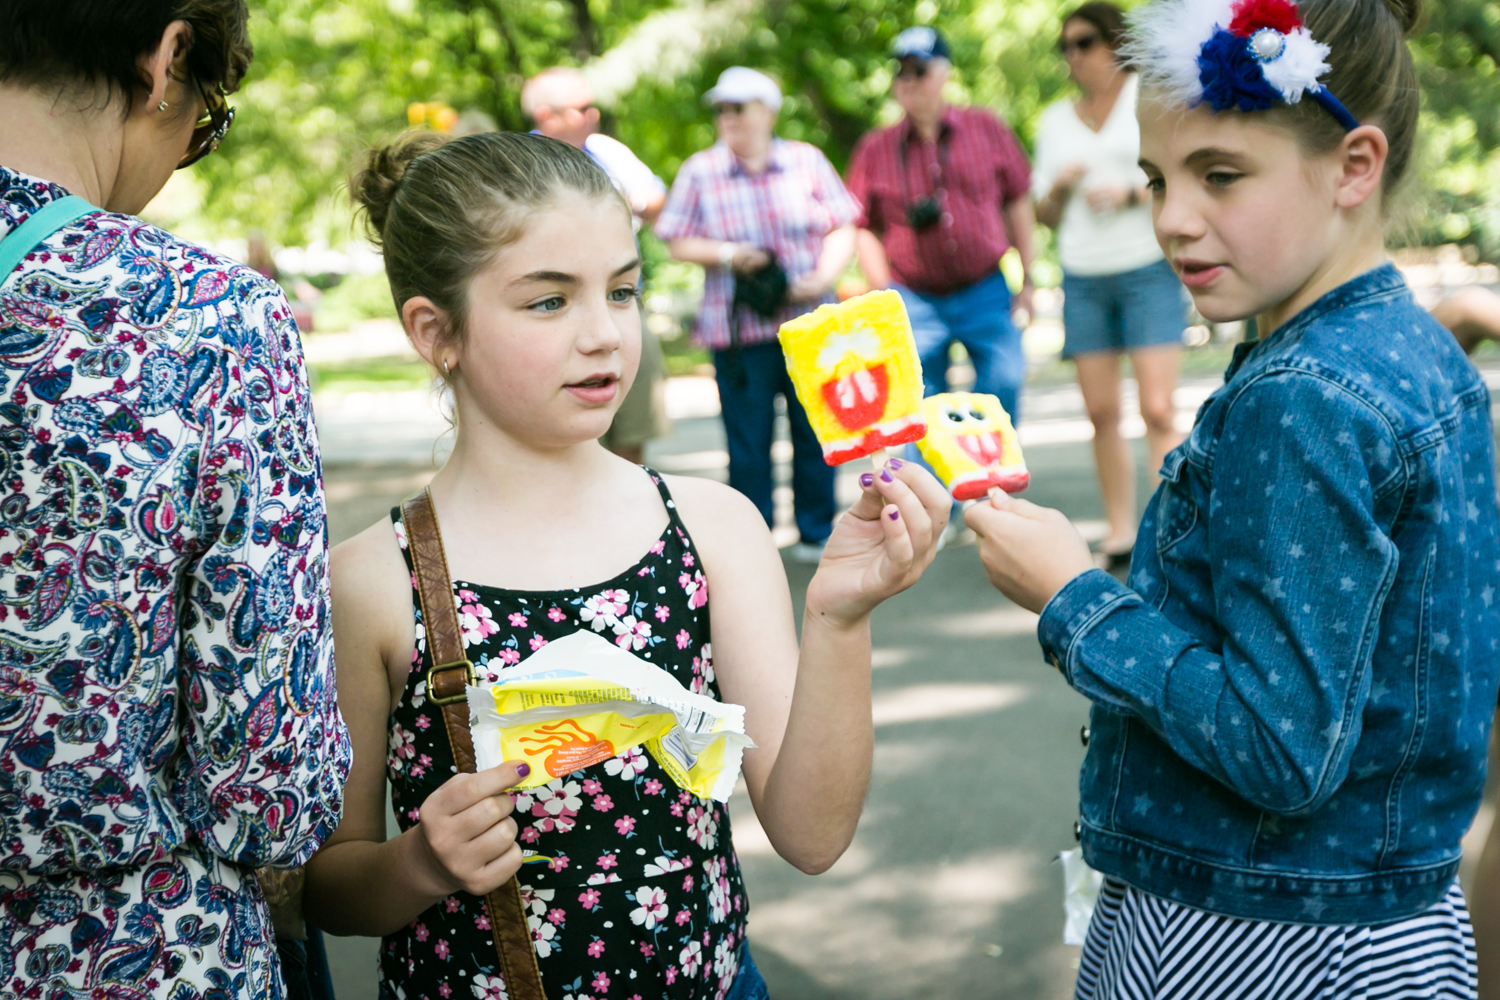 Two little girls in Central Park holding Spongebob ice creams